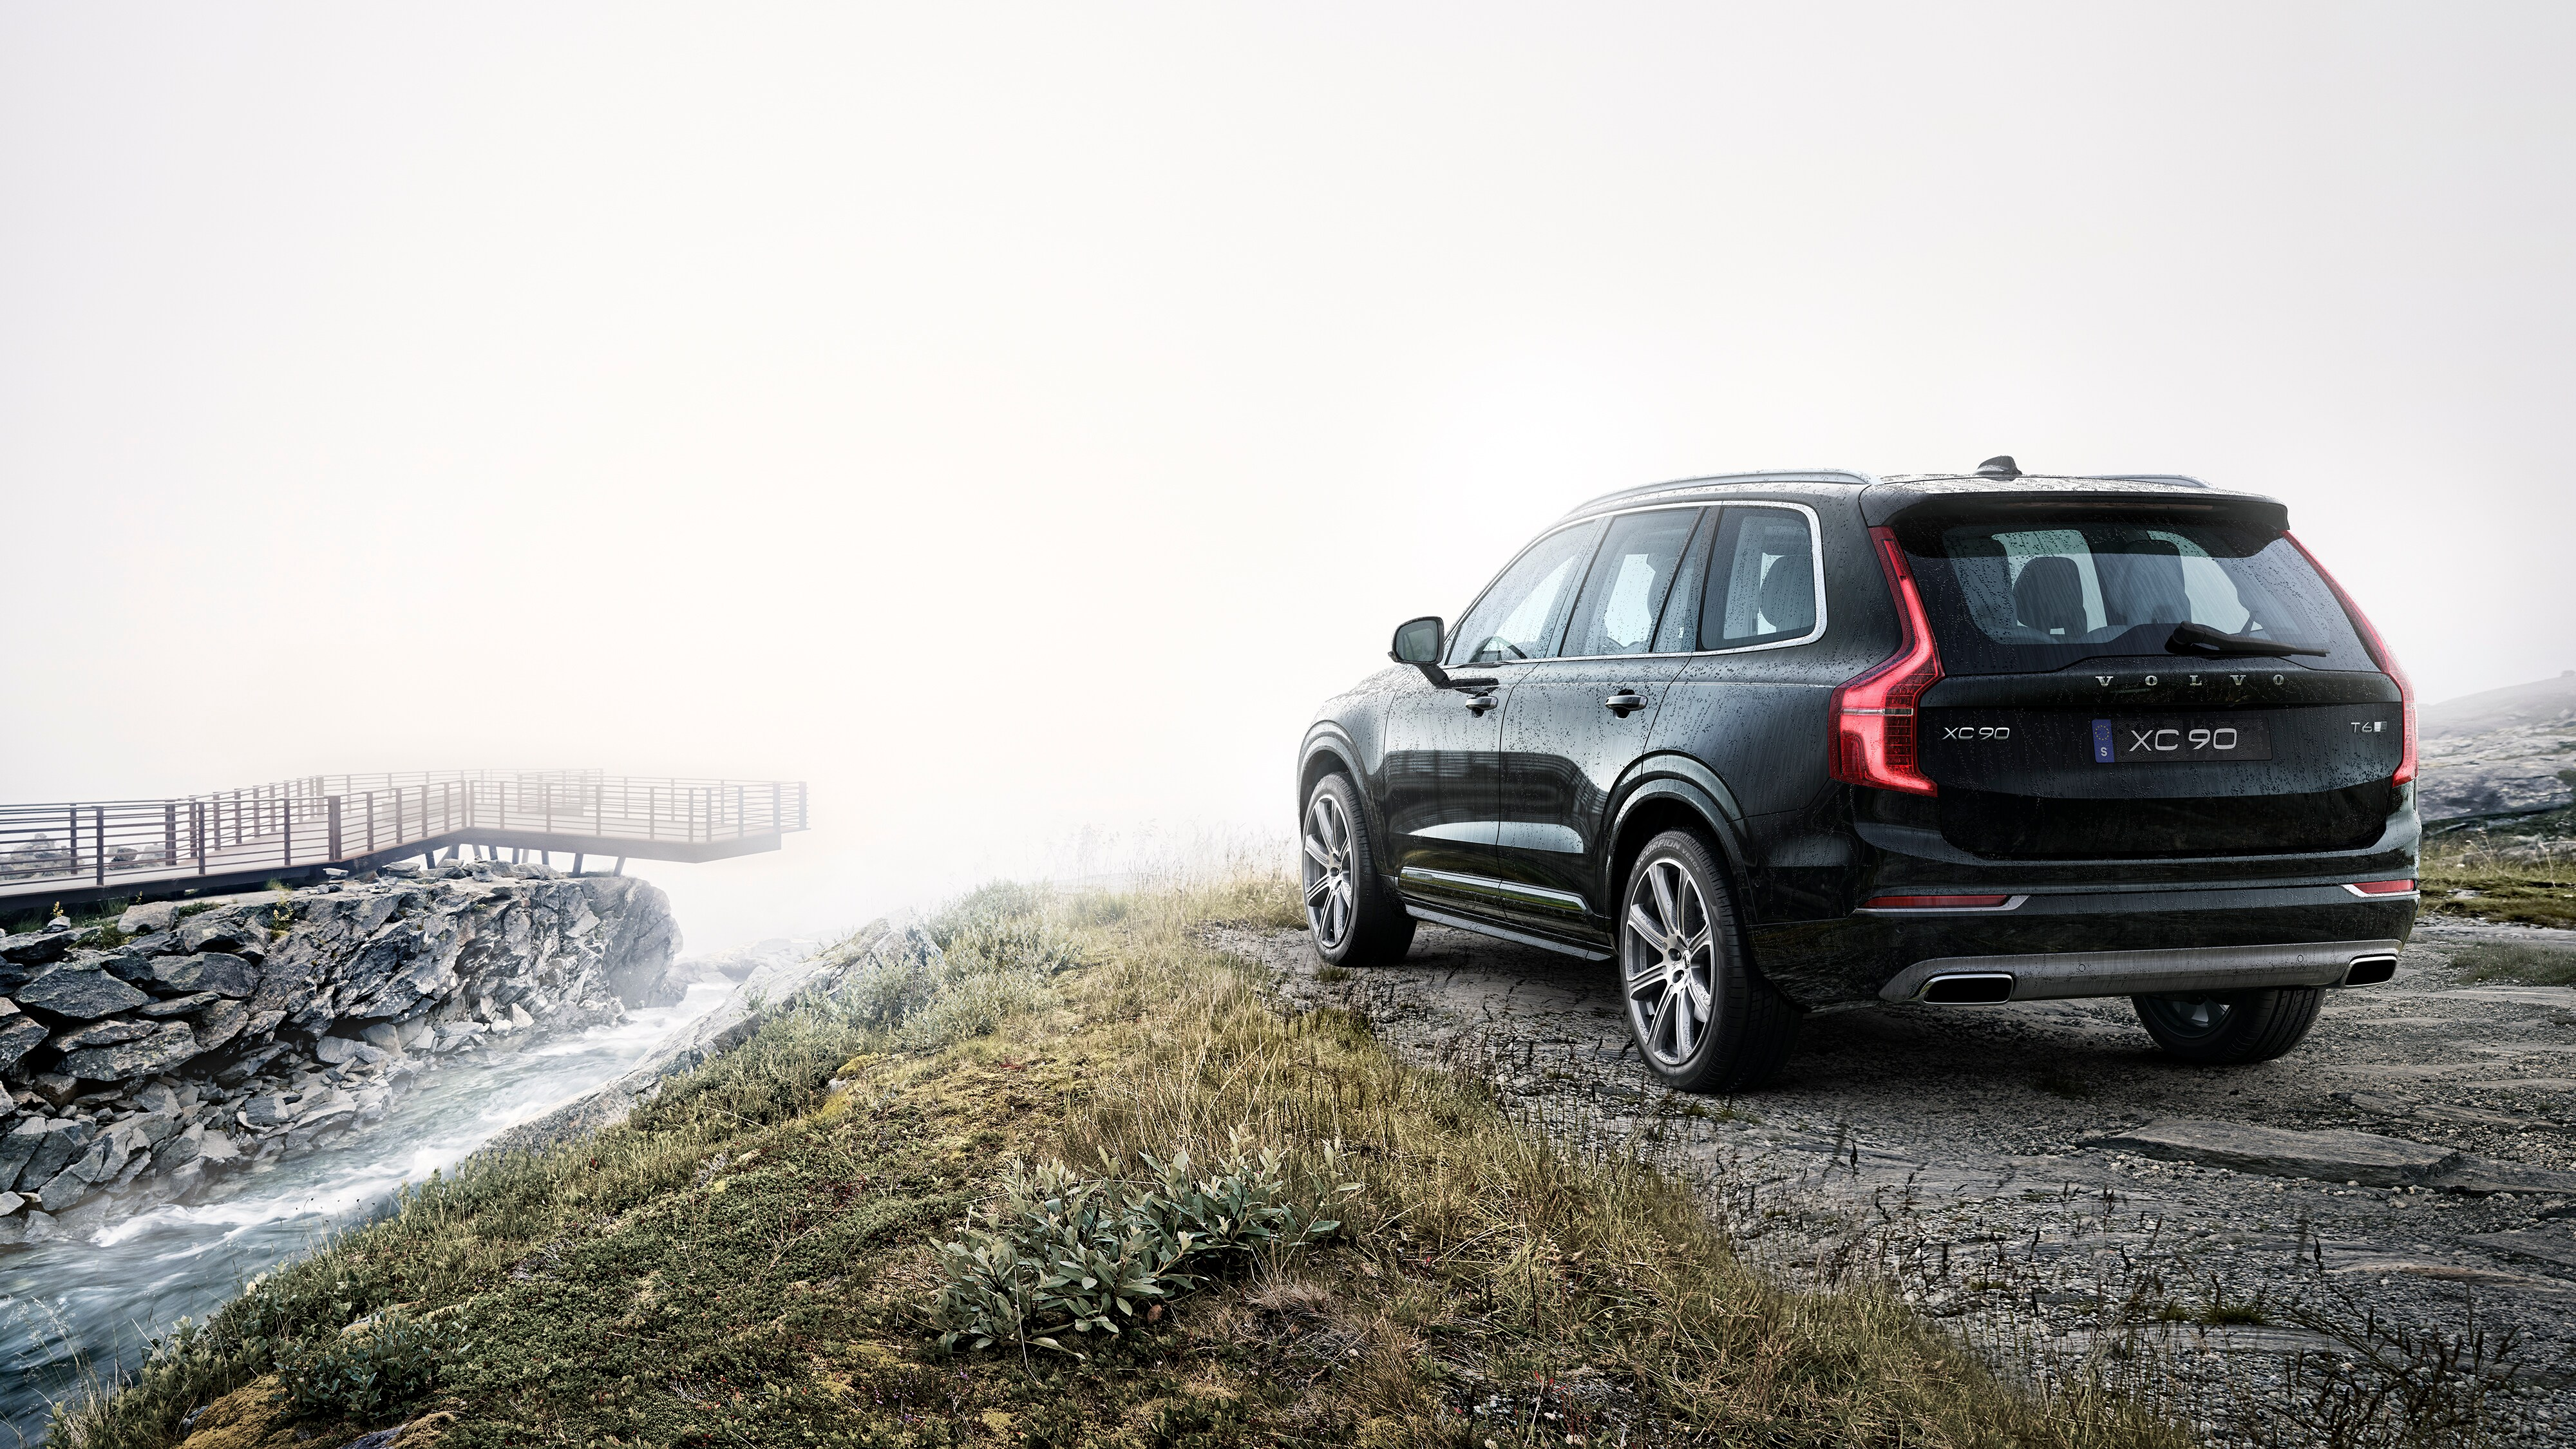 A Volvo XC90 parked next to a fast-flowing stream in the countryside